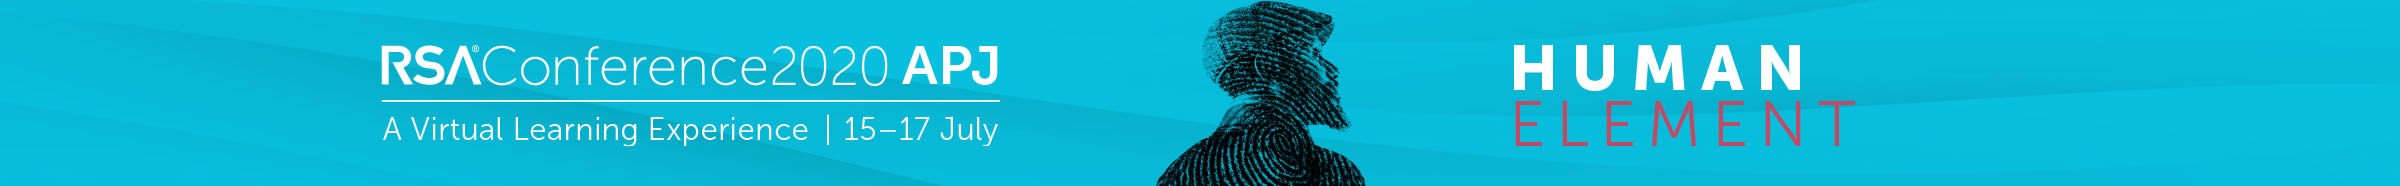 RSA Conference 2020 APJ | A Virtual Learning Experience | 15-17 July